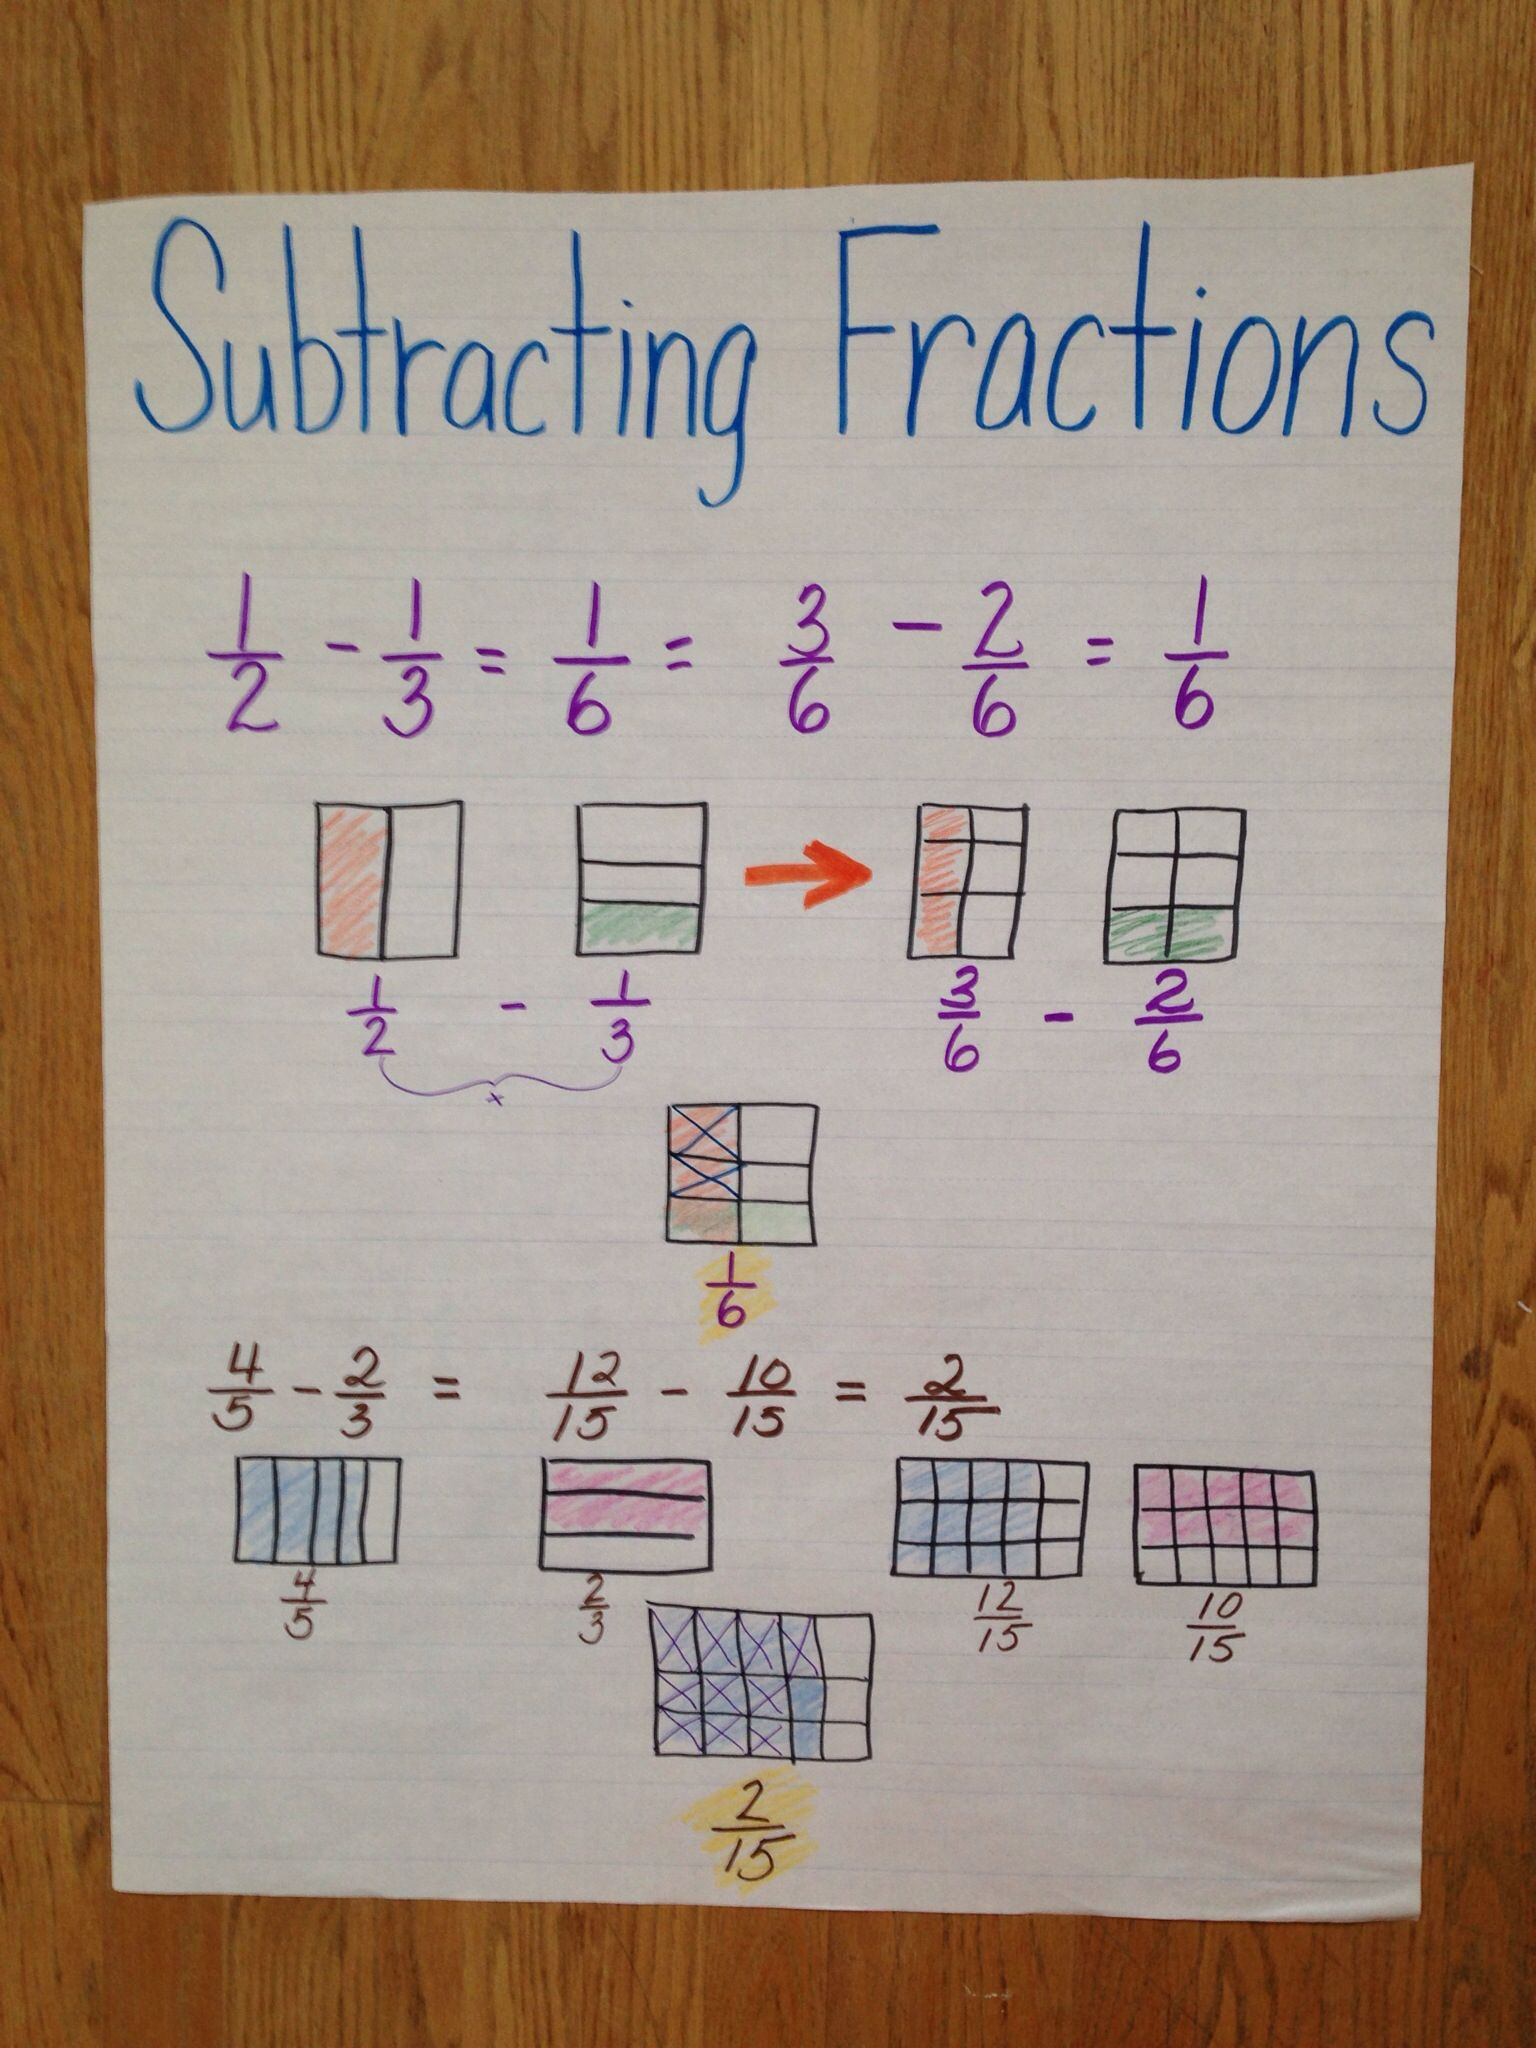 Subtracting Fractions 5th Grade Anchor Chart Common Core Engage Ny  With Images